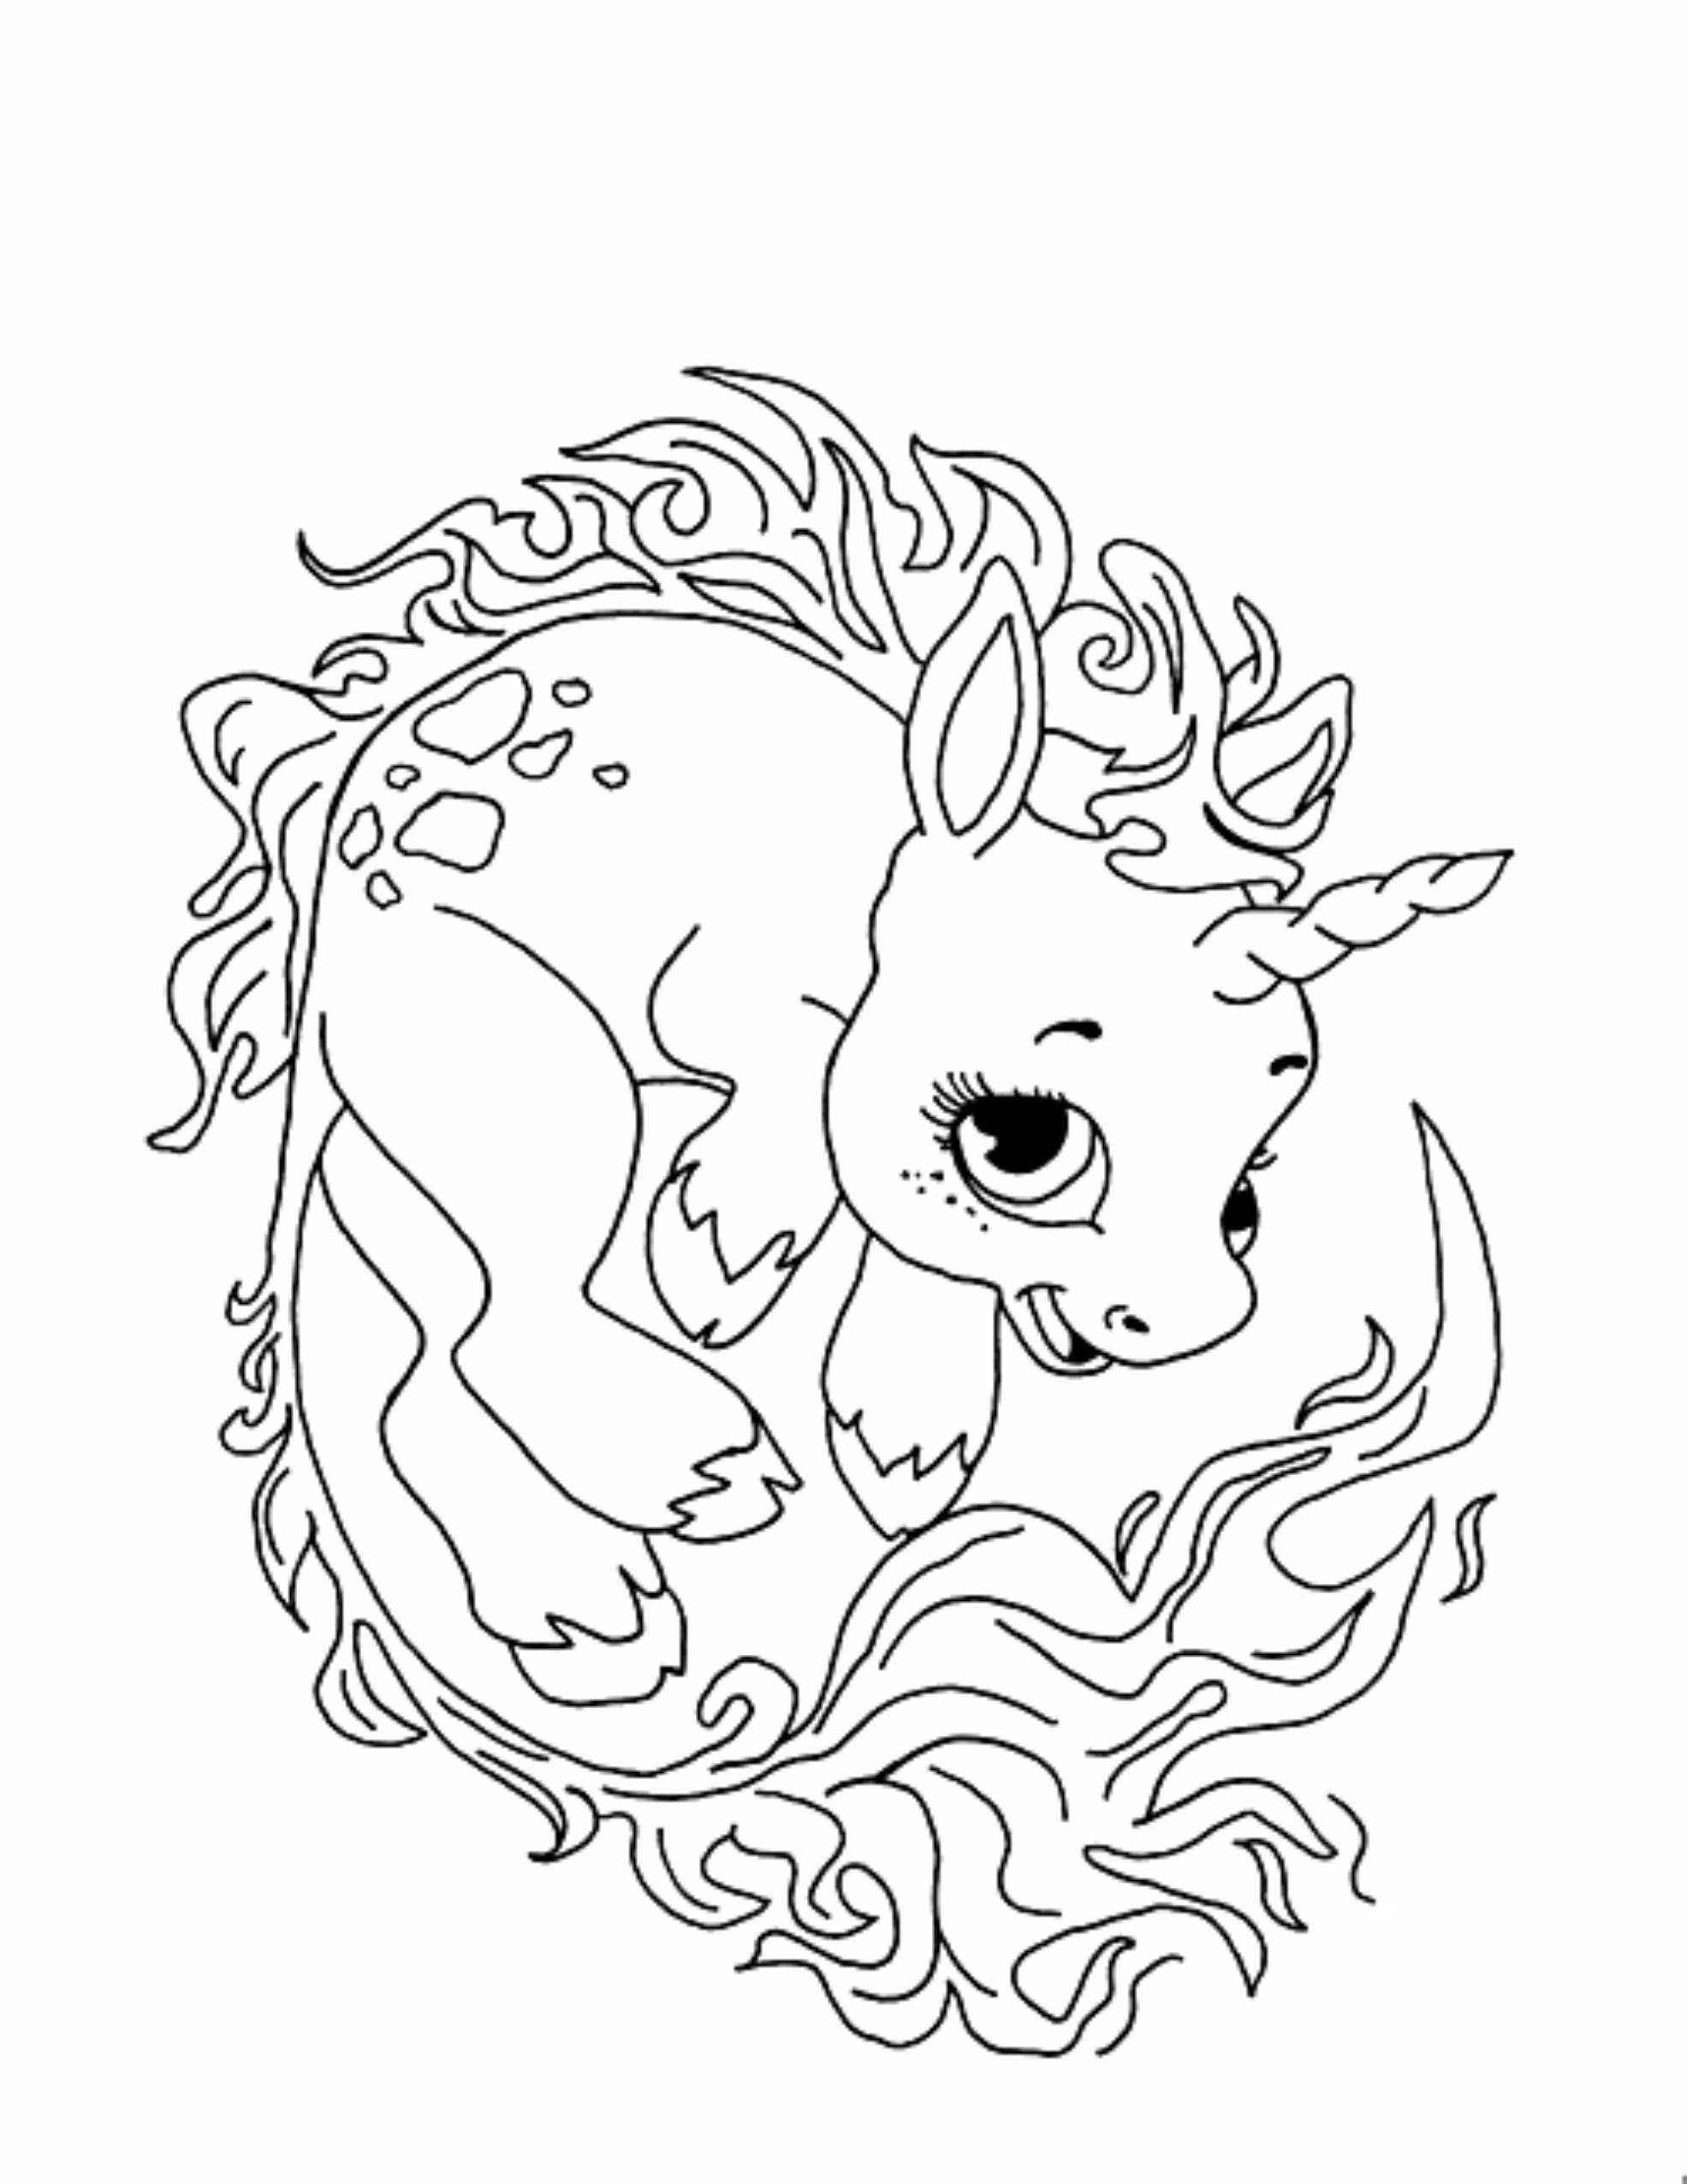 Unicorn coloring page for kids from the thousand photographs on the web in relation to unicorn coloring page for kids picks the very best choices